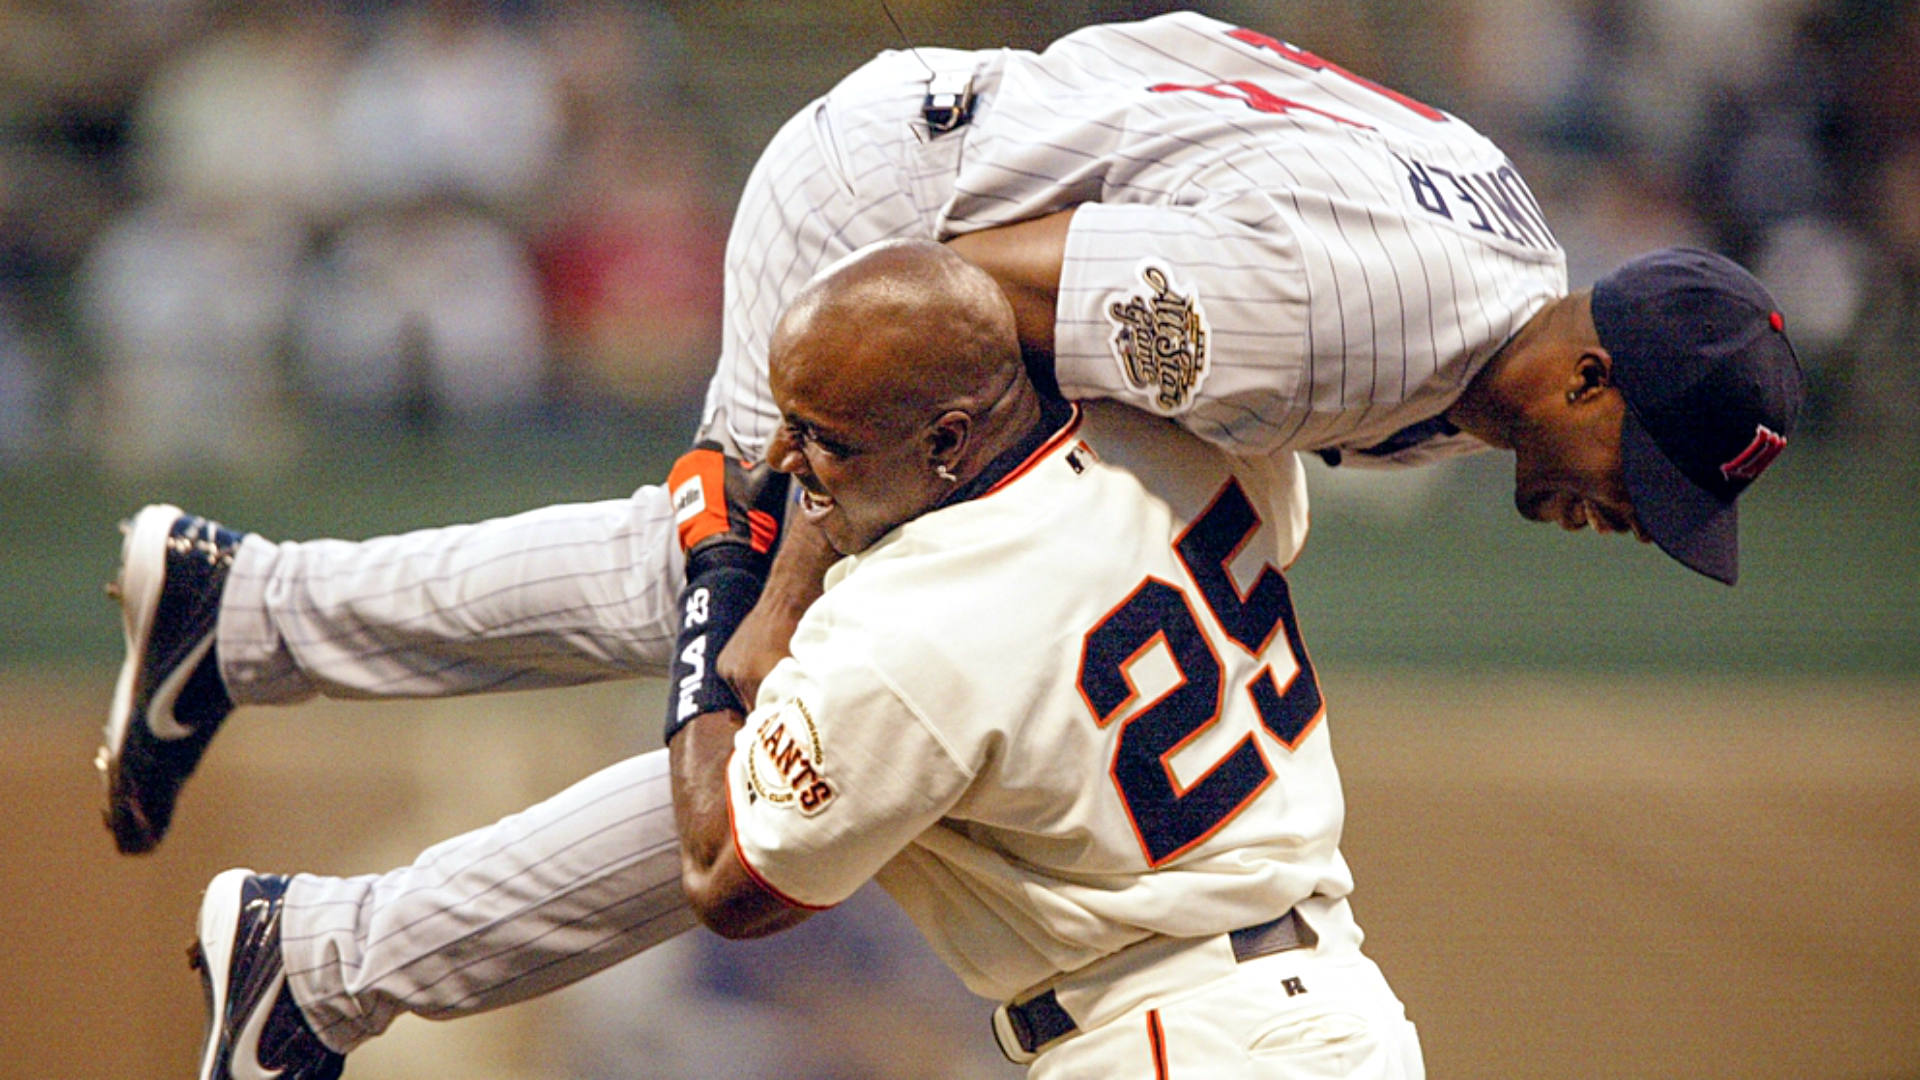 Bonds-hunter-2002-getty-ftr-071016jpg_8kx8s10gpi2j1n5pi21jijf98